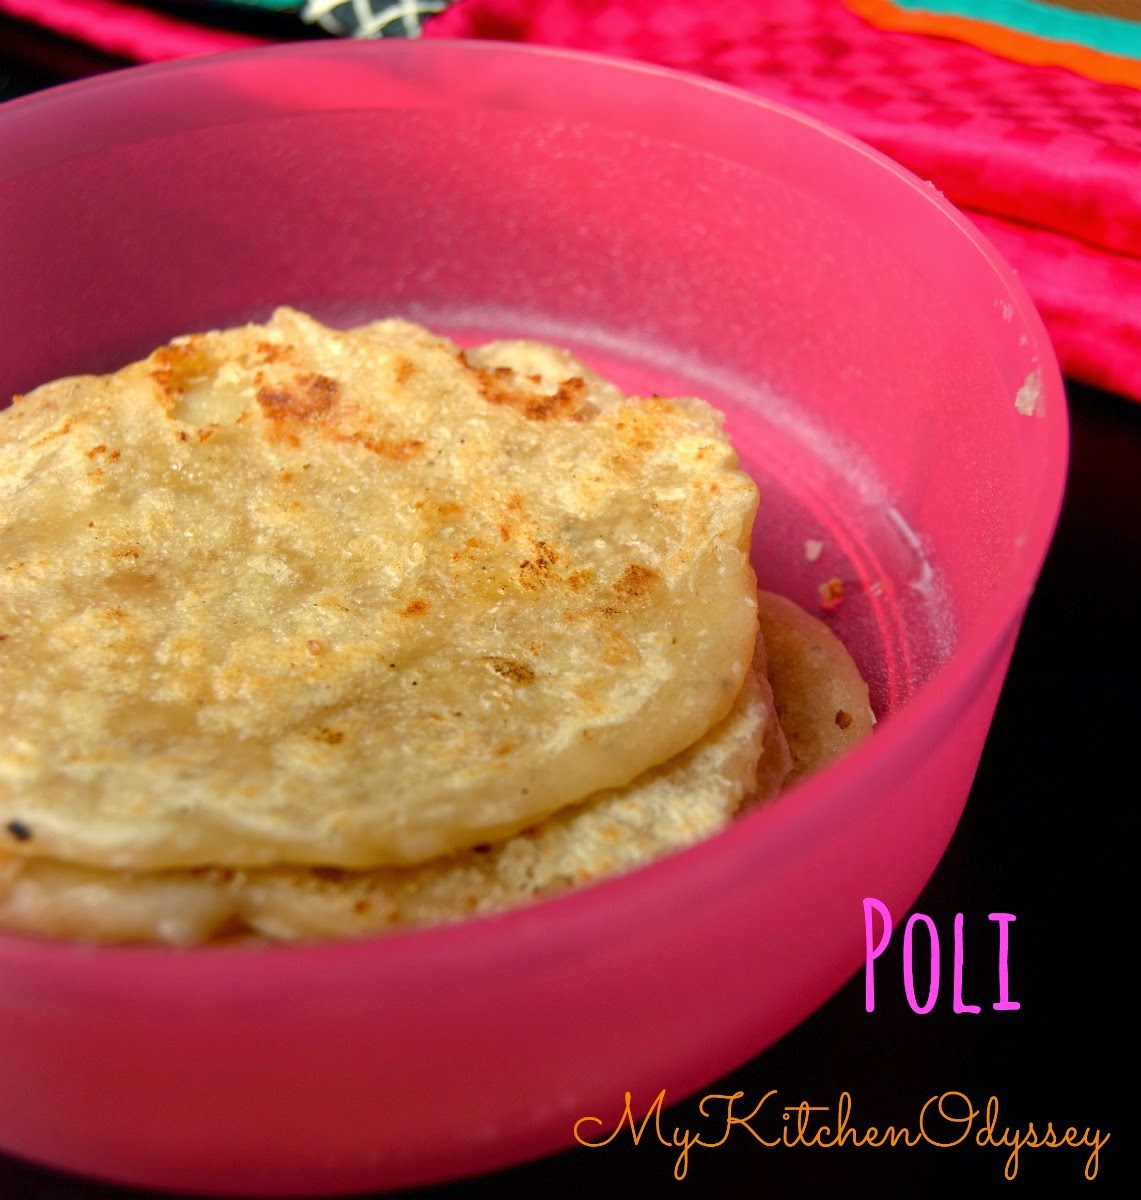 poli recipe